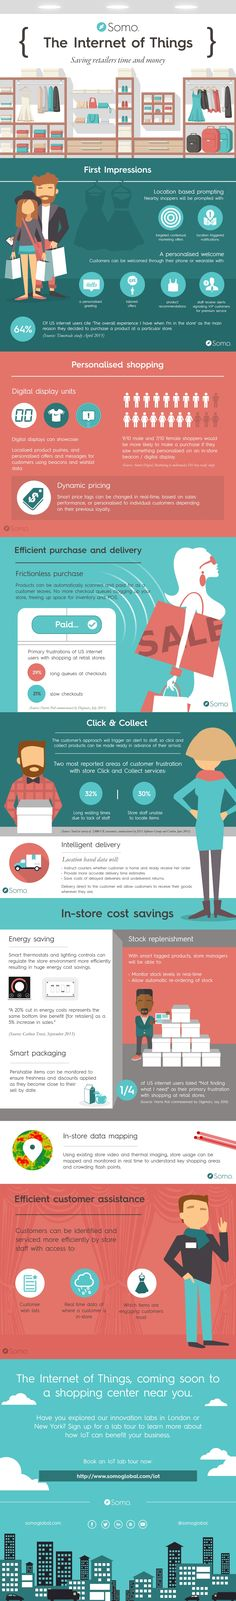 What Role Can IoT Play in Retail?  When we talk a lot about the Internet of Things, a lot of the emphasis is either on increasing efficiency for businesses, or the push into people's homes. But what about where the point where retailers and customers meet? What impact will connected technology have on physical stores?  Somo have put together an infographic looking at some of the most common customer frustrations with stores, and how the Internet of Things might provide solutions.